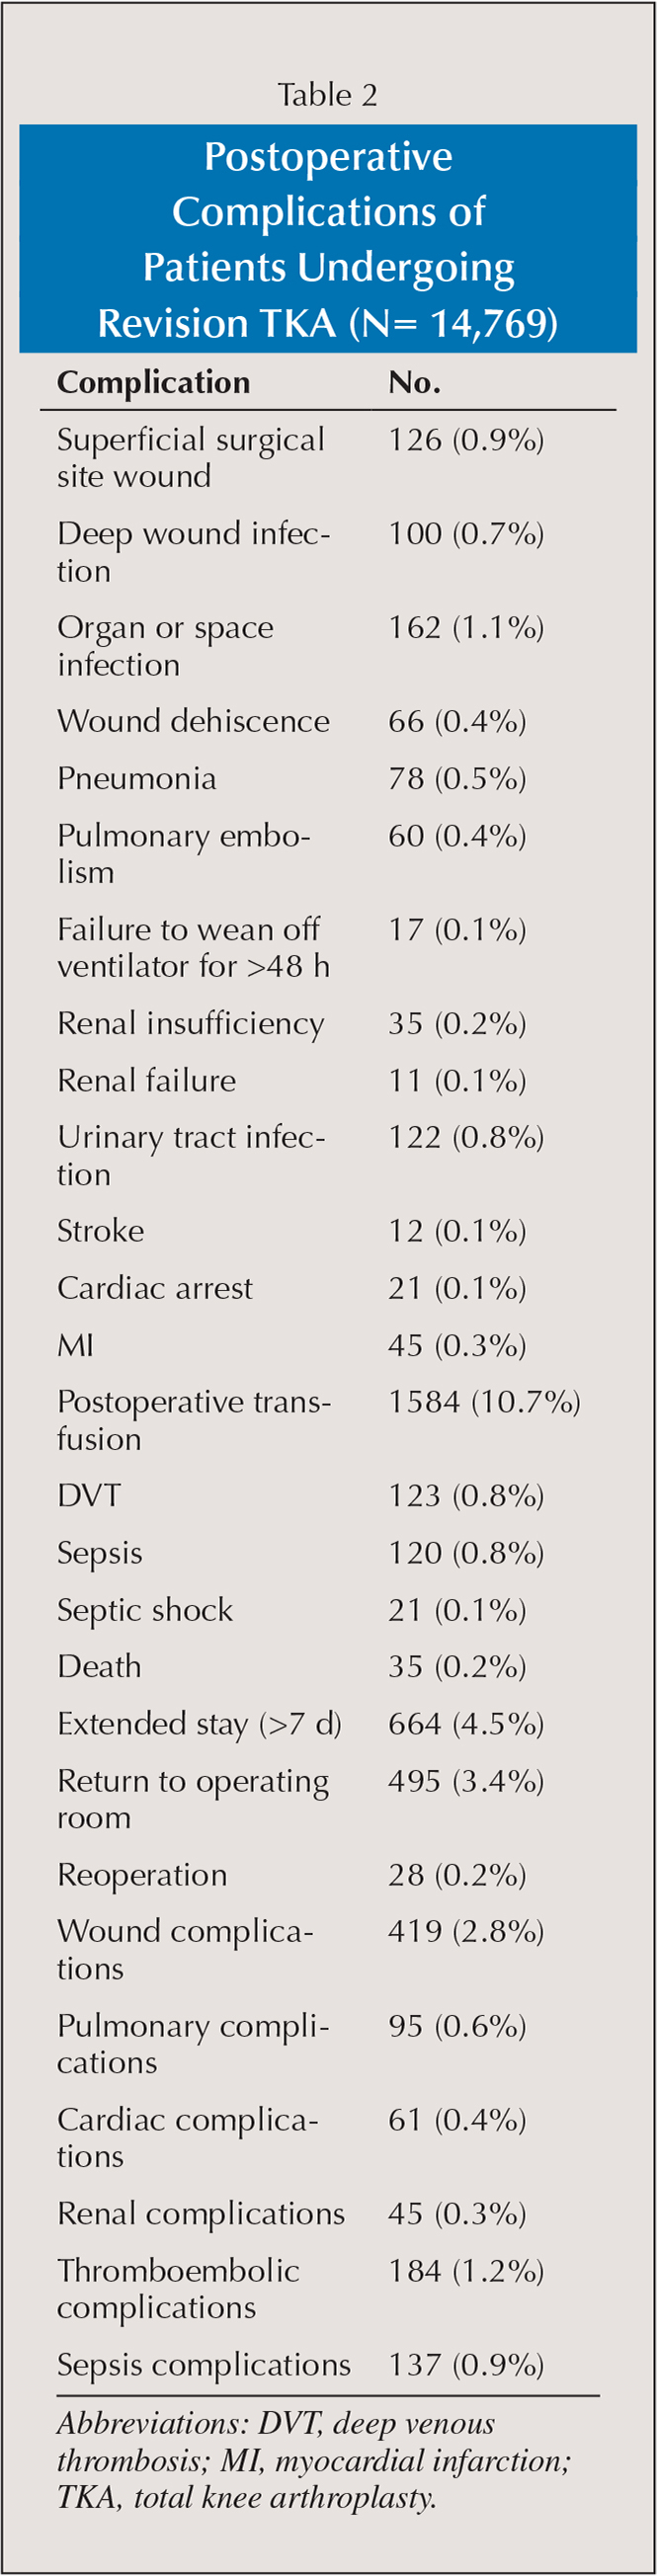 Postoperative Complications of Patients Undergoing Revision TKA (N= 14,769)